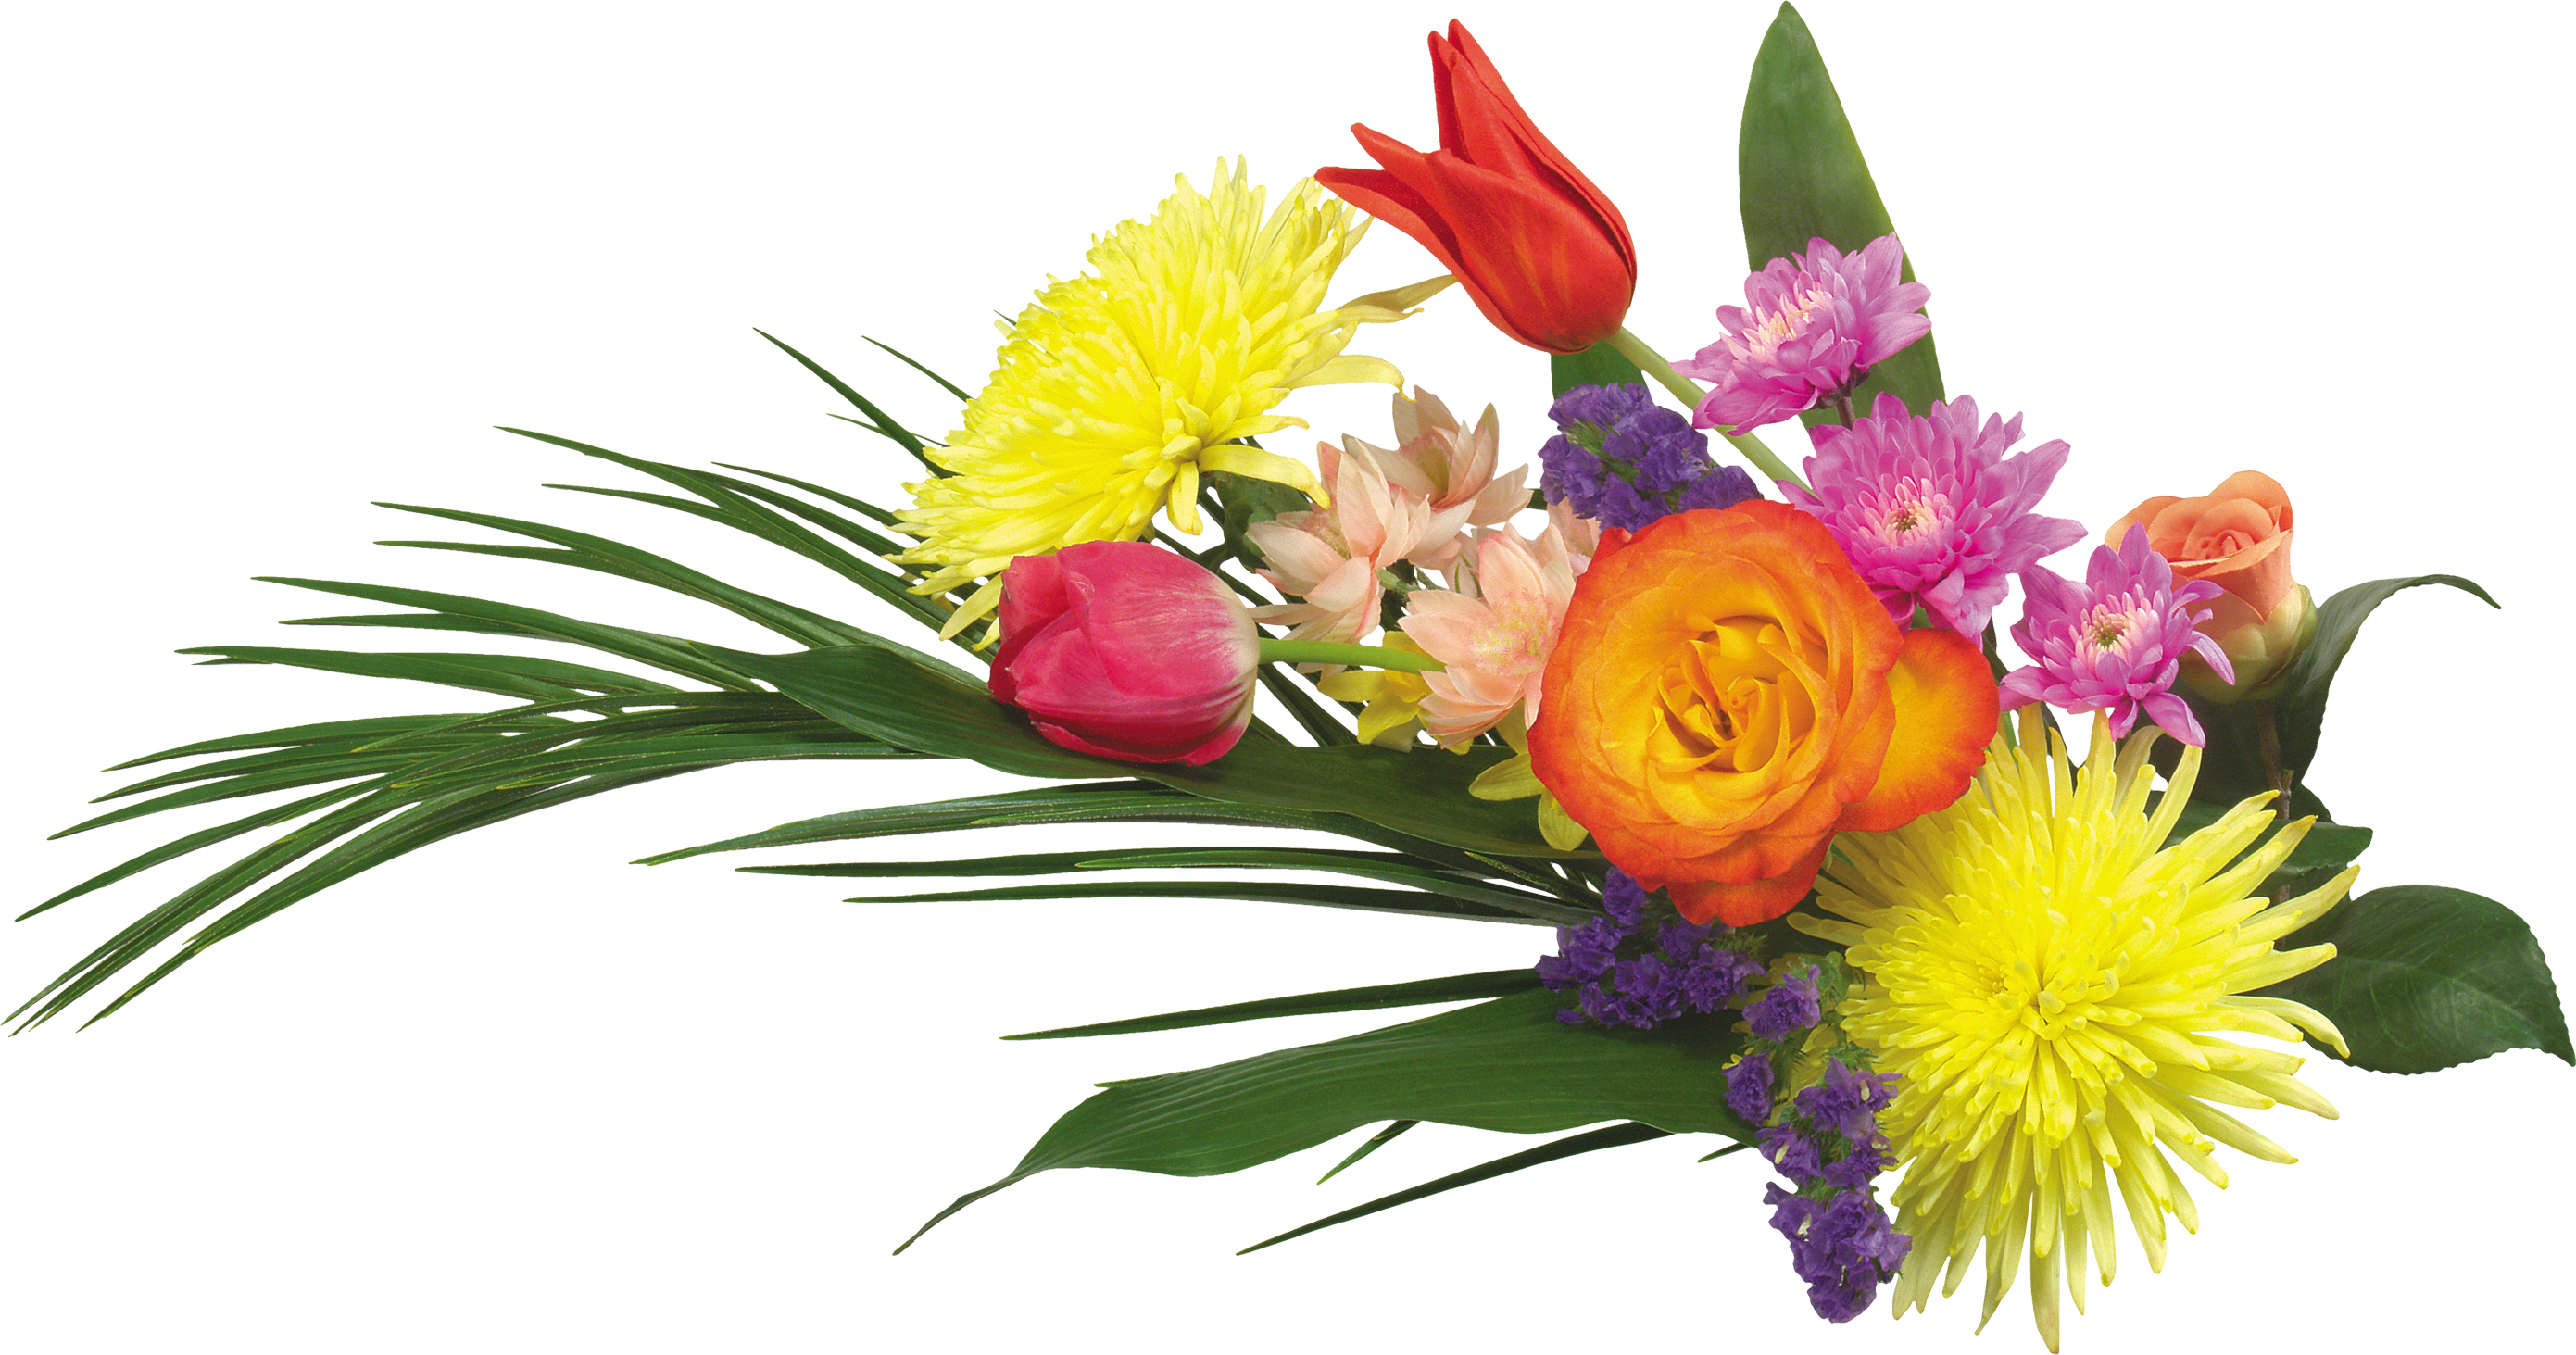 Bouquet flowers PNG image with transparent background